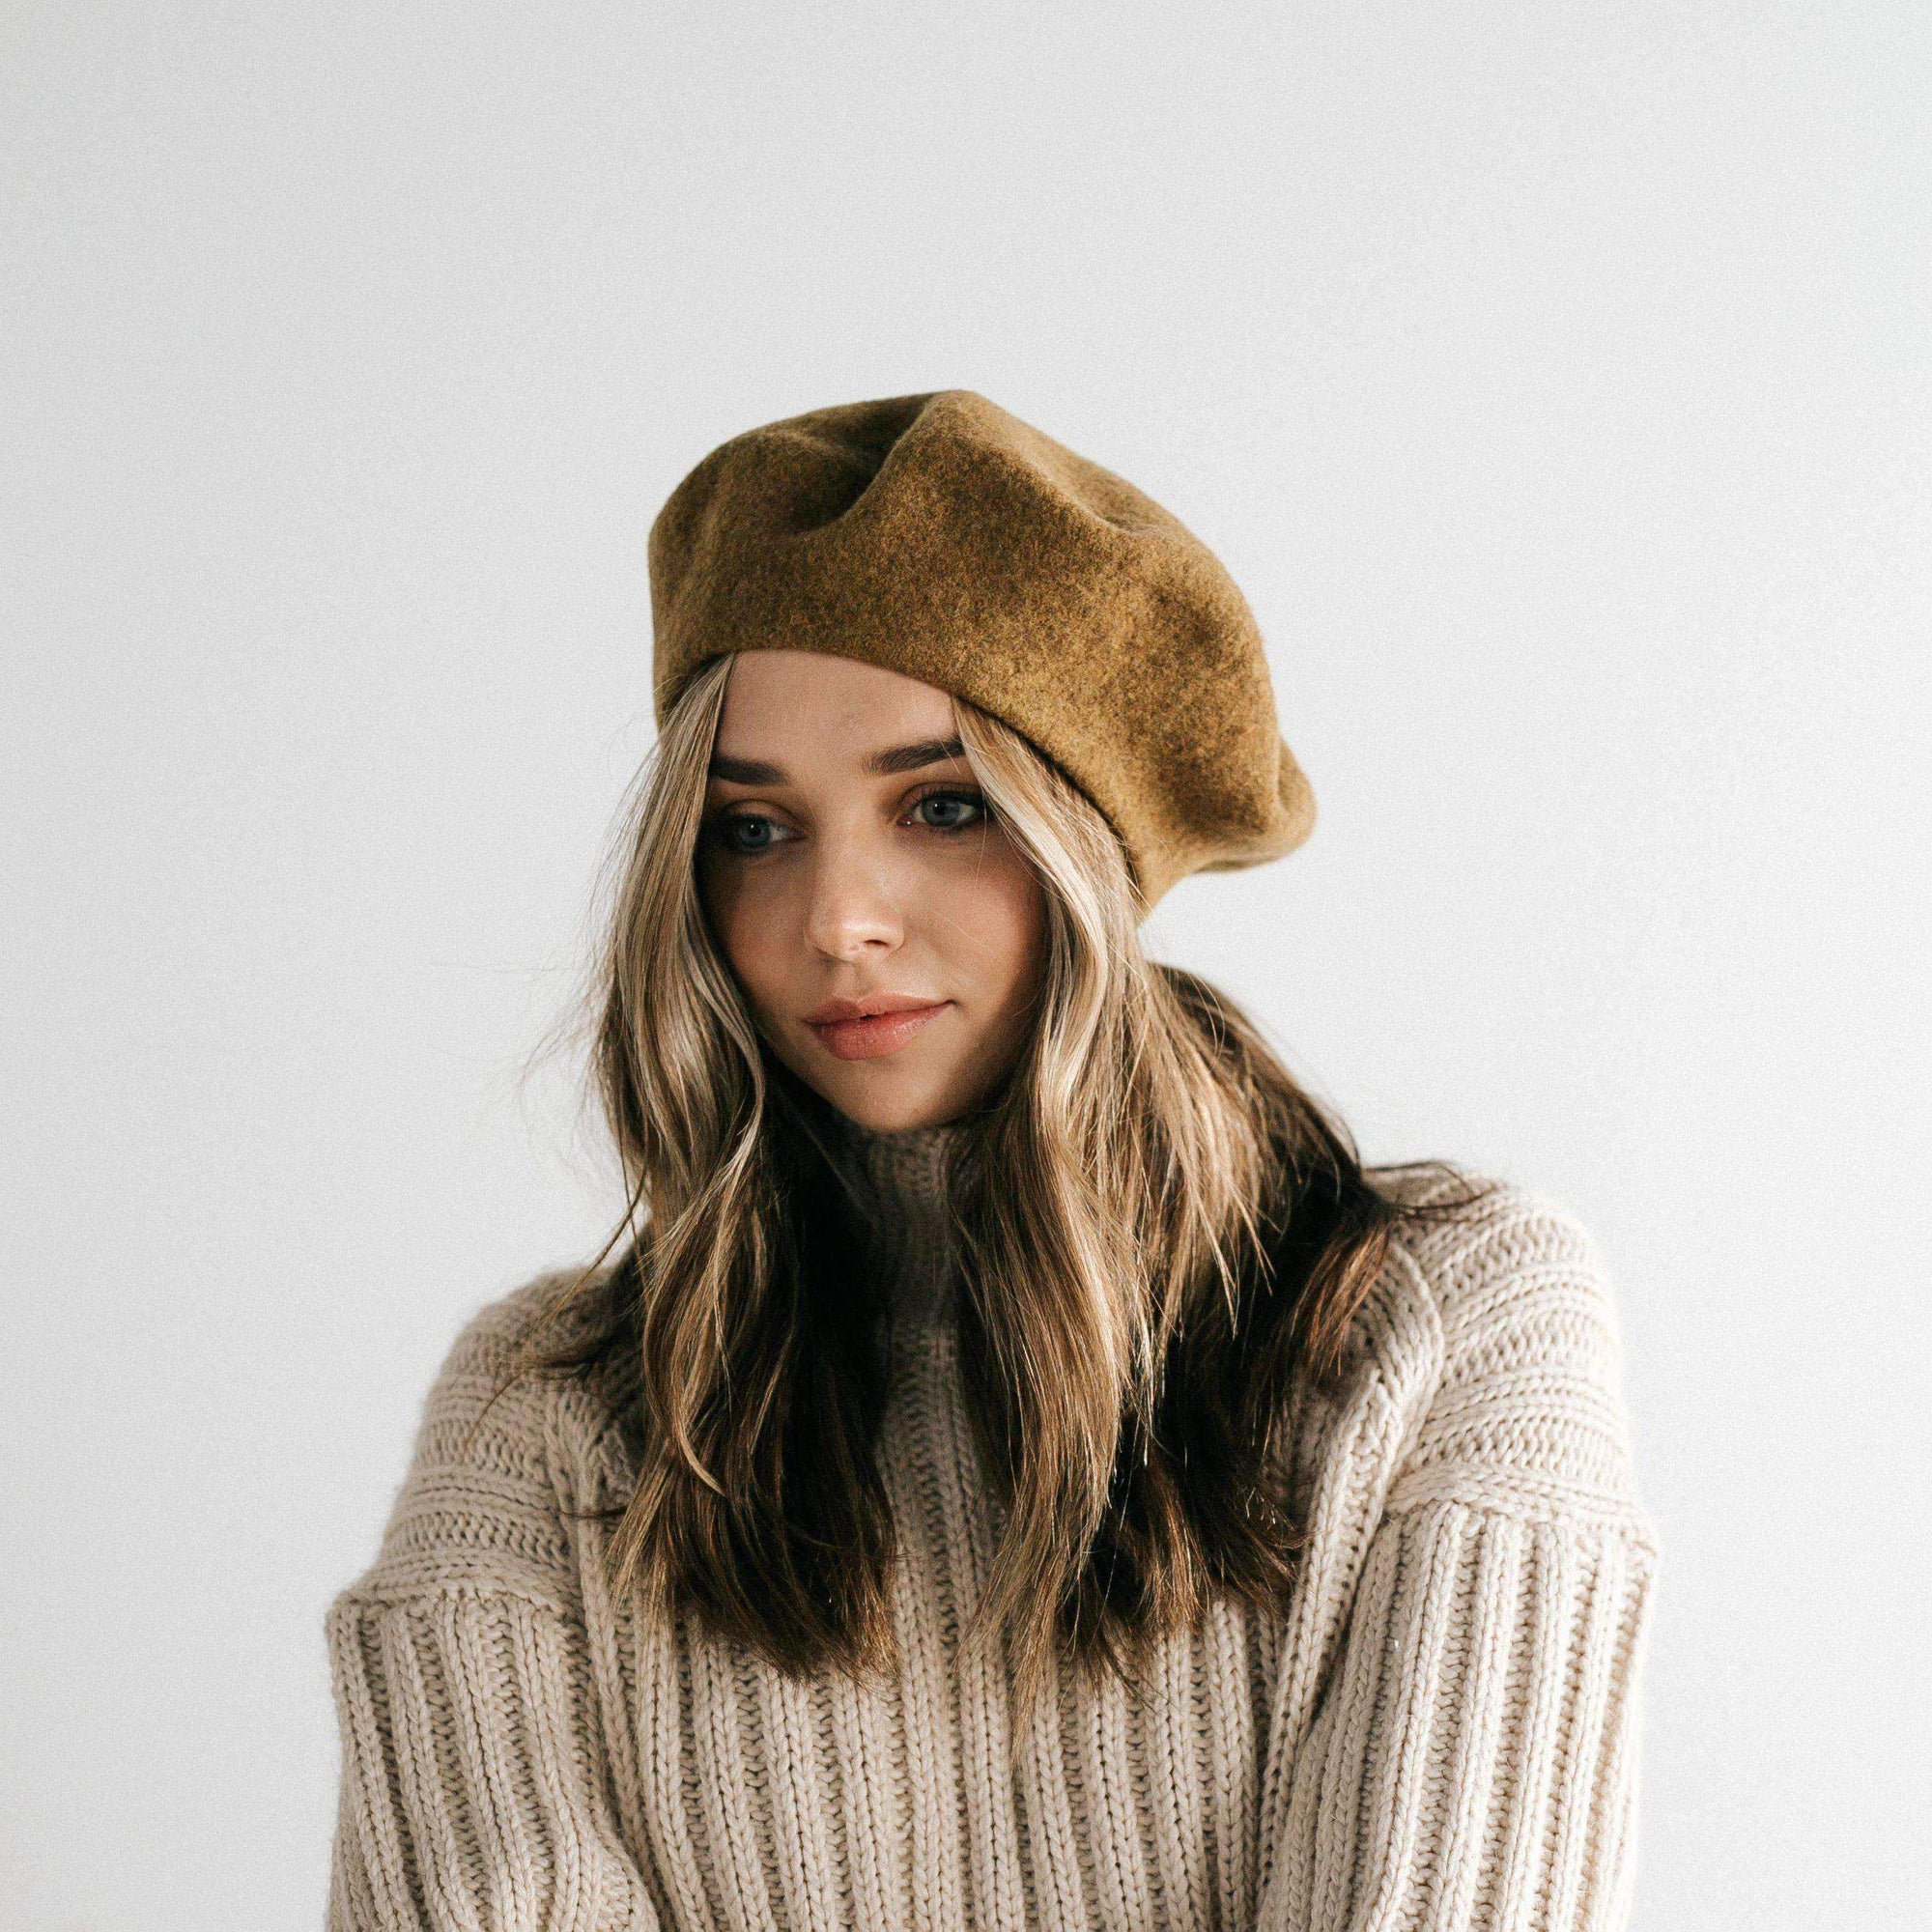 GIGI PIP Hats for Women- Sophie Beret - Camel-Women's Cap